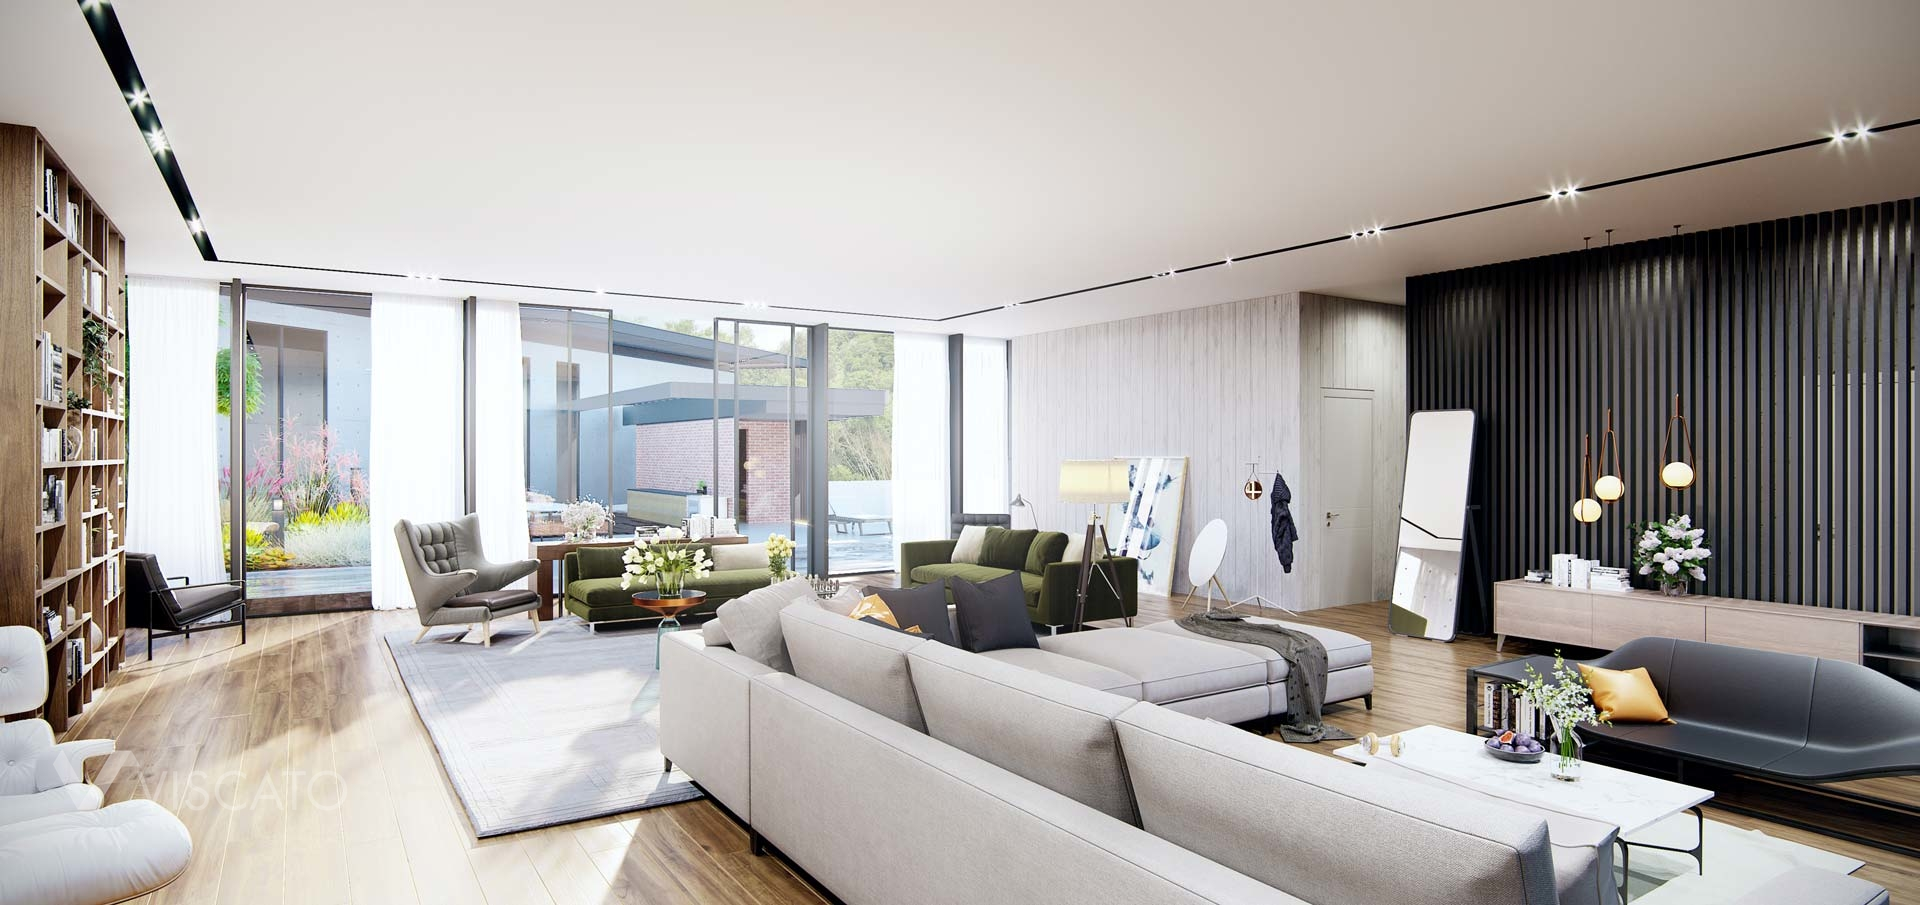 spacious living room with big windows, Viscato 3D